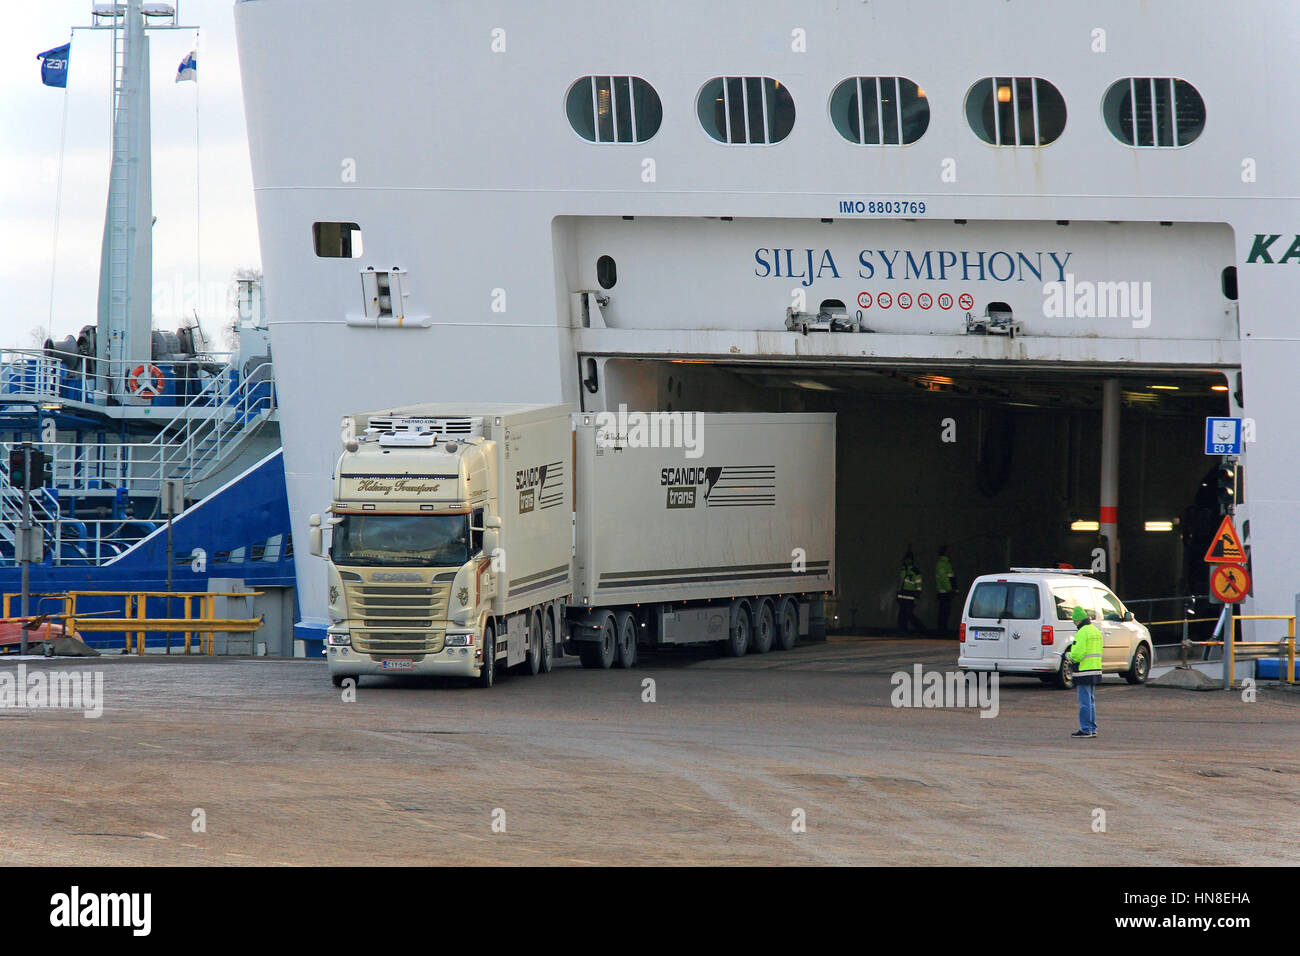 truck ferry stockfotos truck ferry bilder alamy. Black Bedroom Furniture Sets. Home Design Ideas